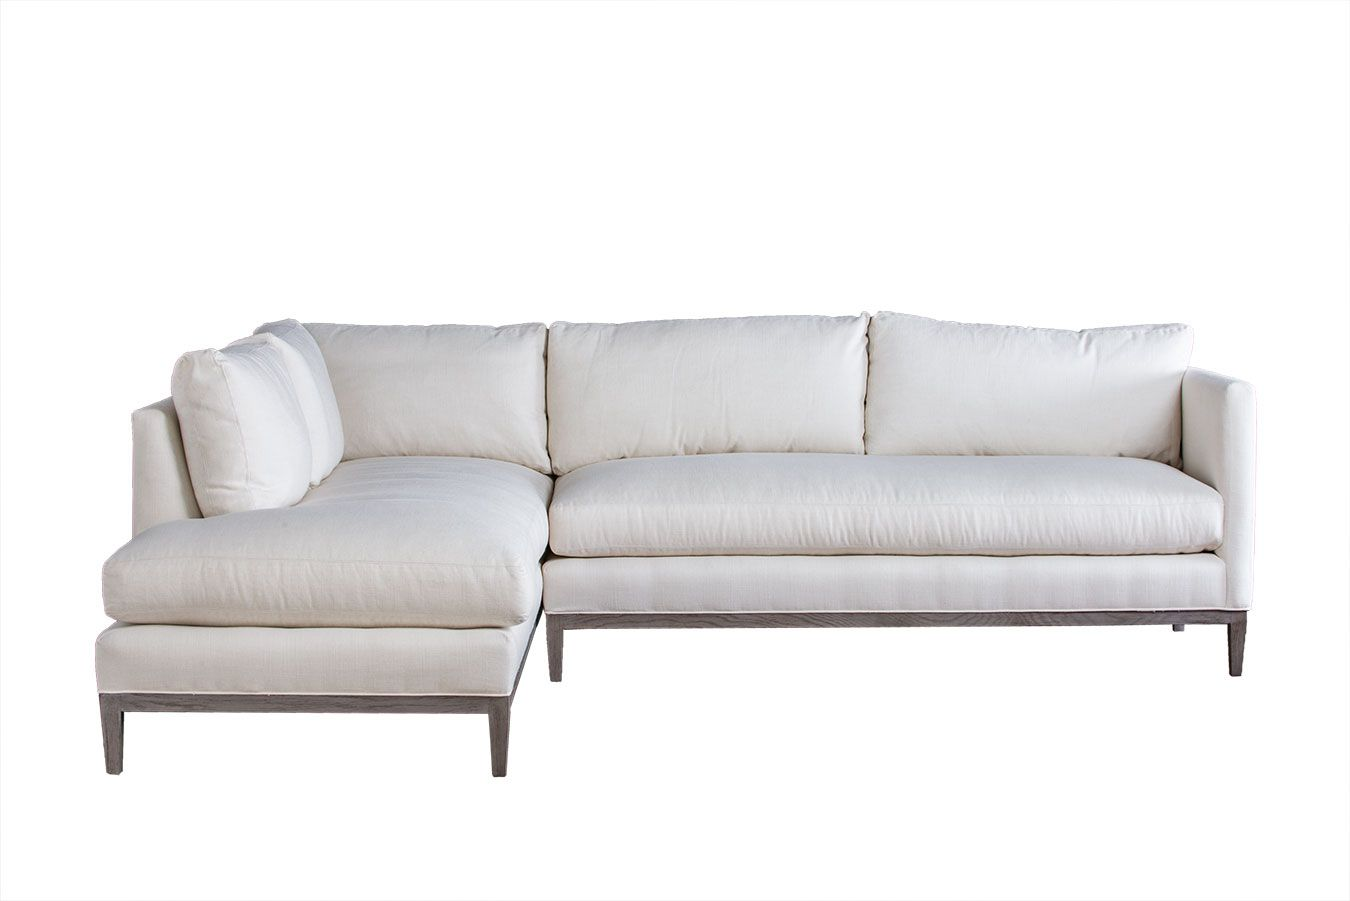 Holloway Sectional Sofa In Crypton Hopsack Oyster Fabric Mecox